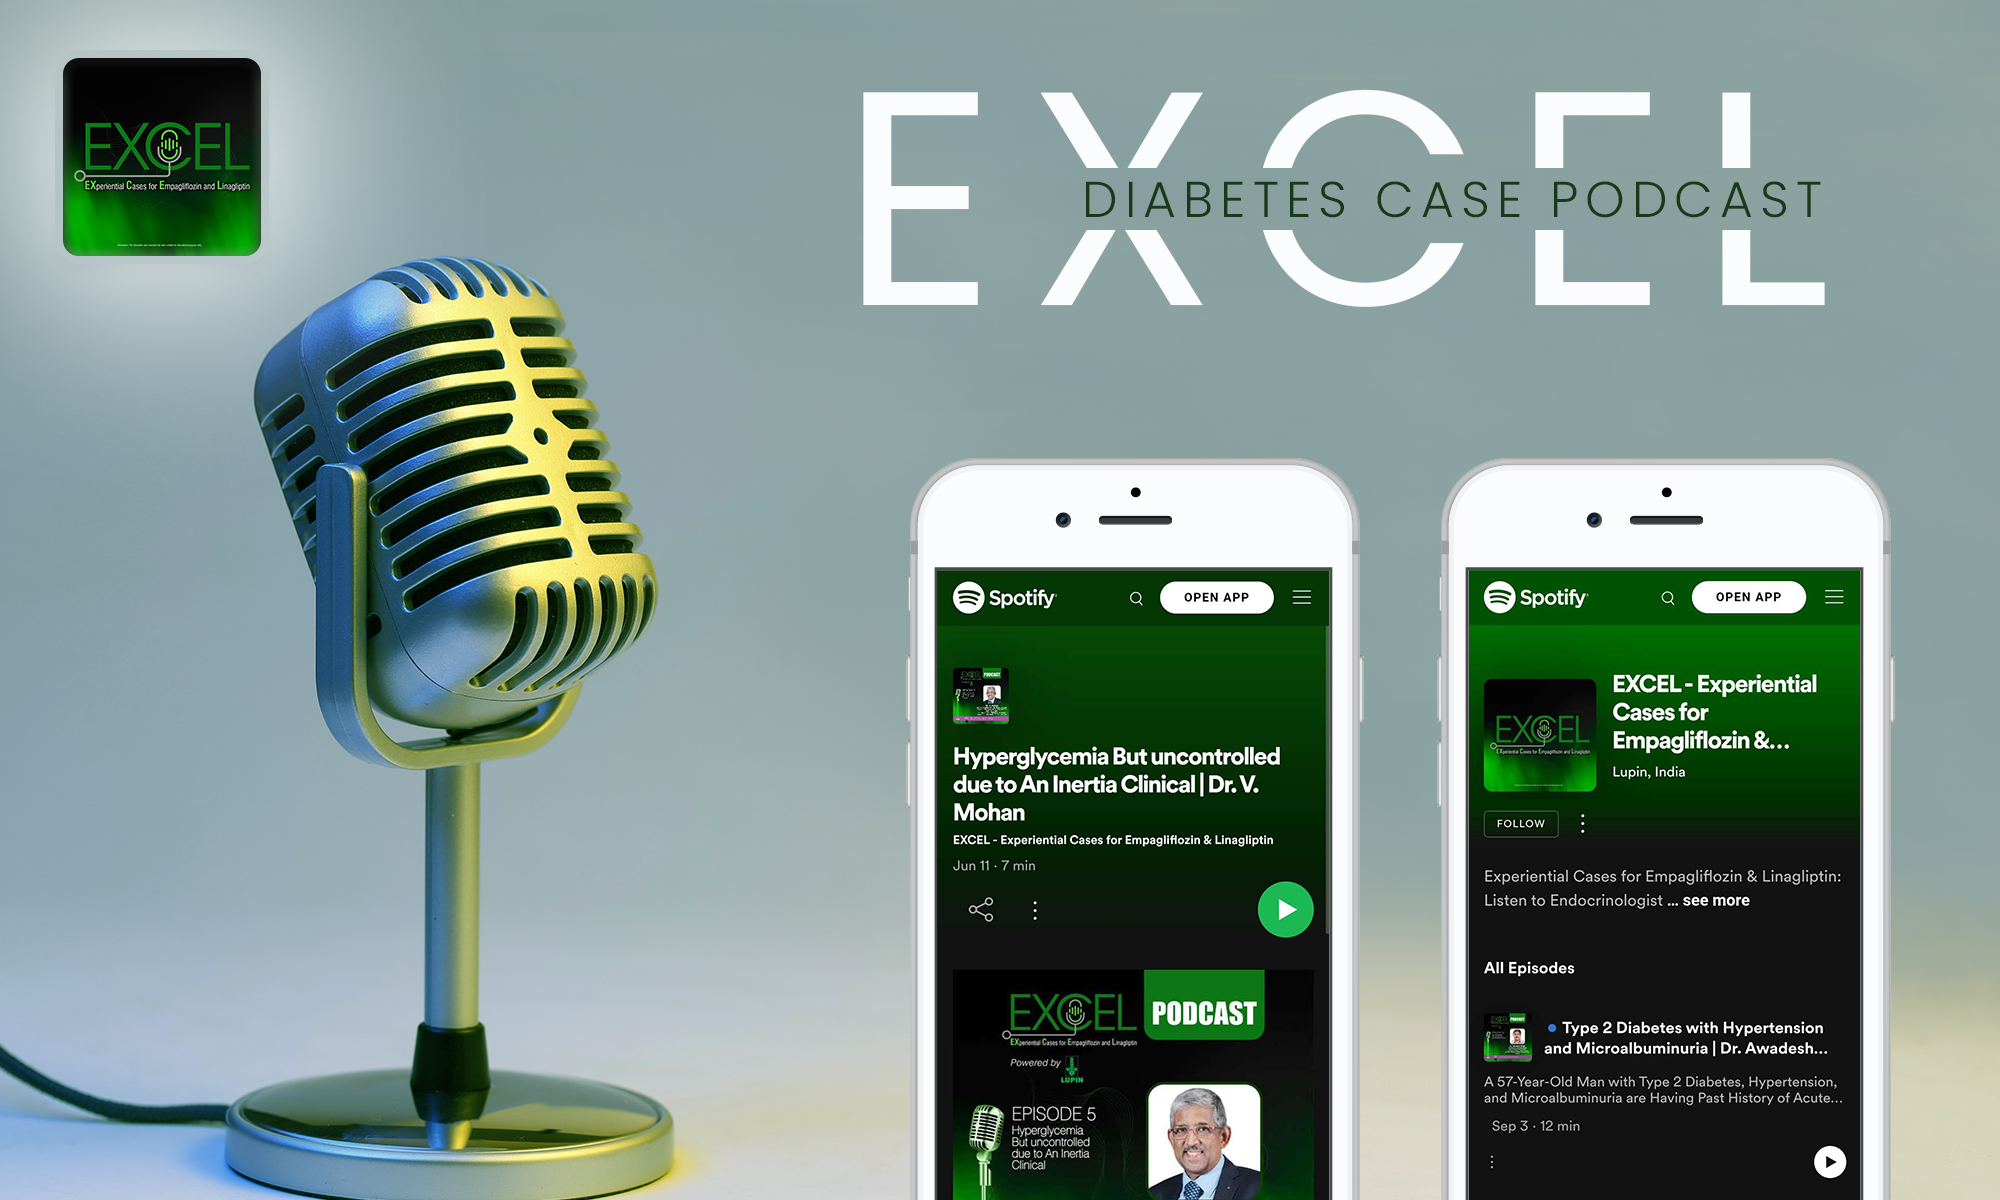 EXCEL Diabetes Case Podcast: A Must in Your Radar